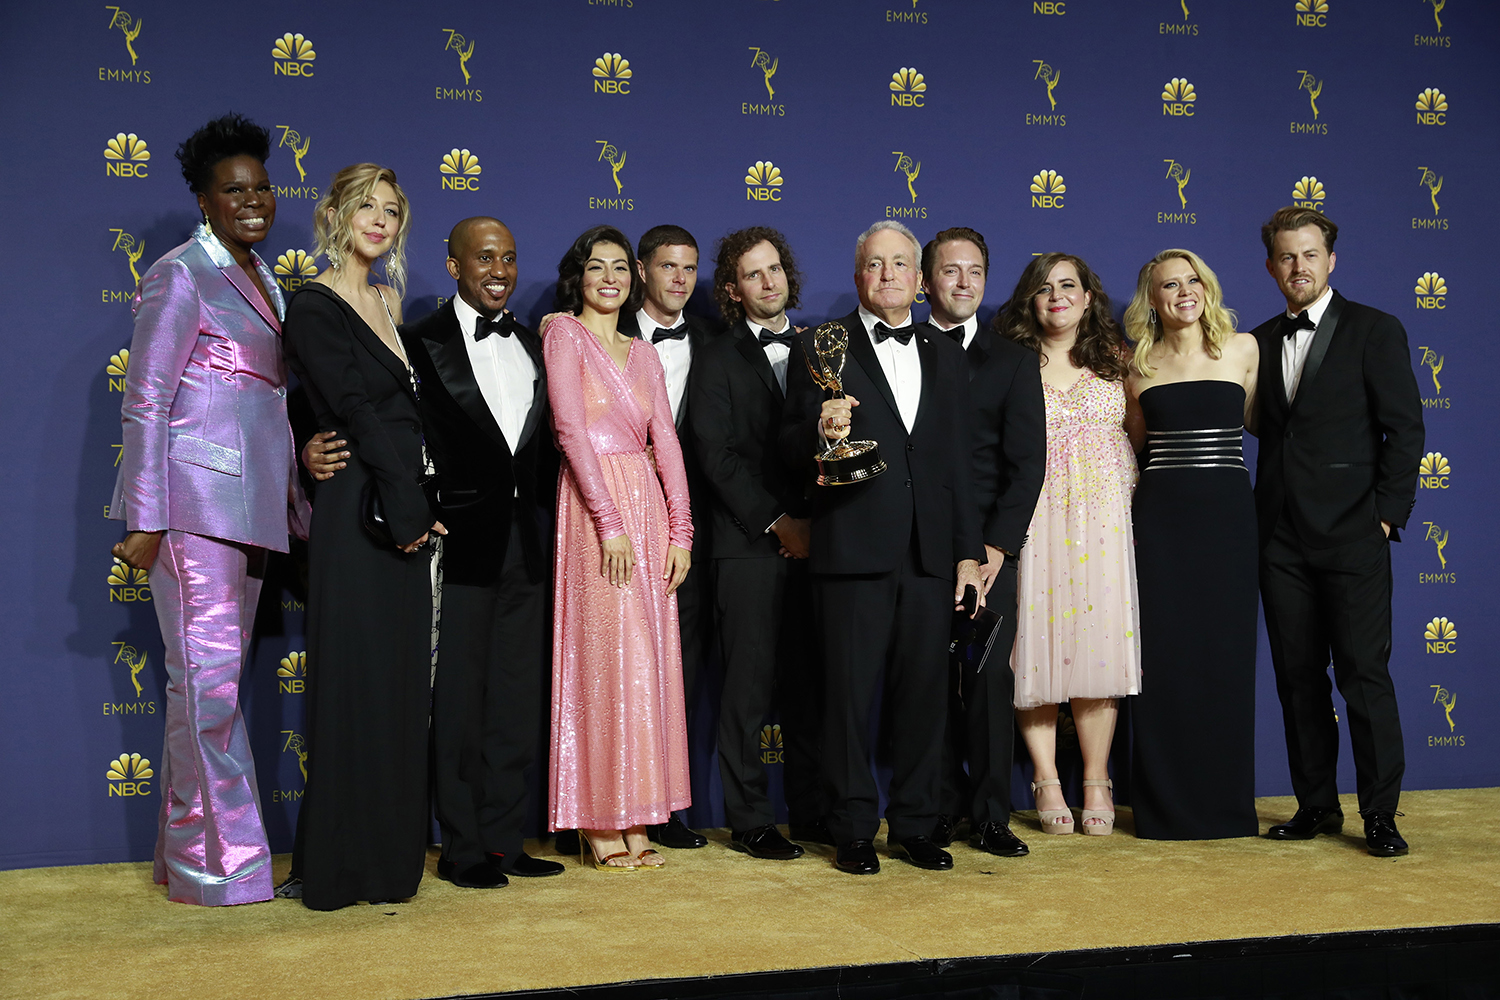 Lorne Michaels and SNL cast backstage during the 70th Primetime Emmy Awards at the Microsoft Theater in Los Angeles on Monday, Sept. 17, 2018. (Allen J. Schaben/Los Angeles Times/TNS)